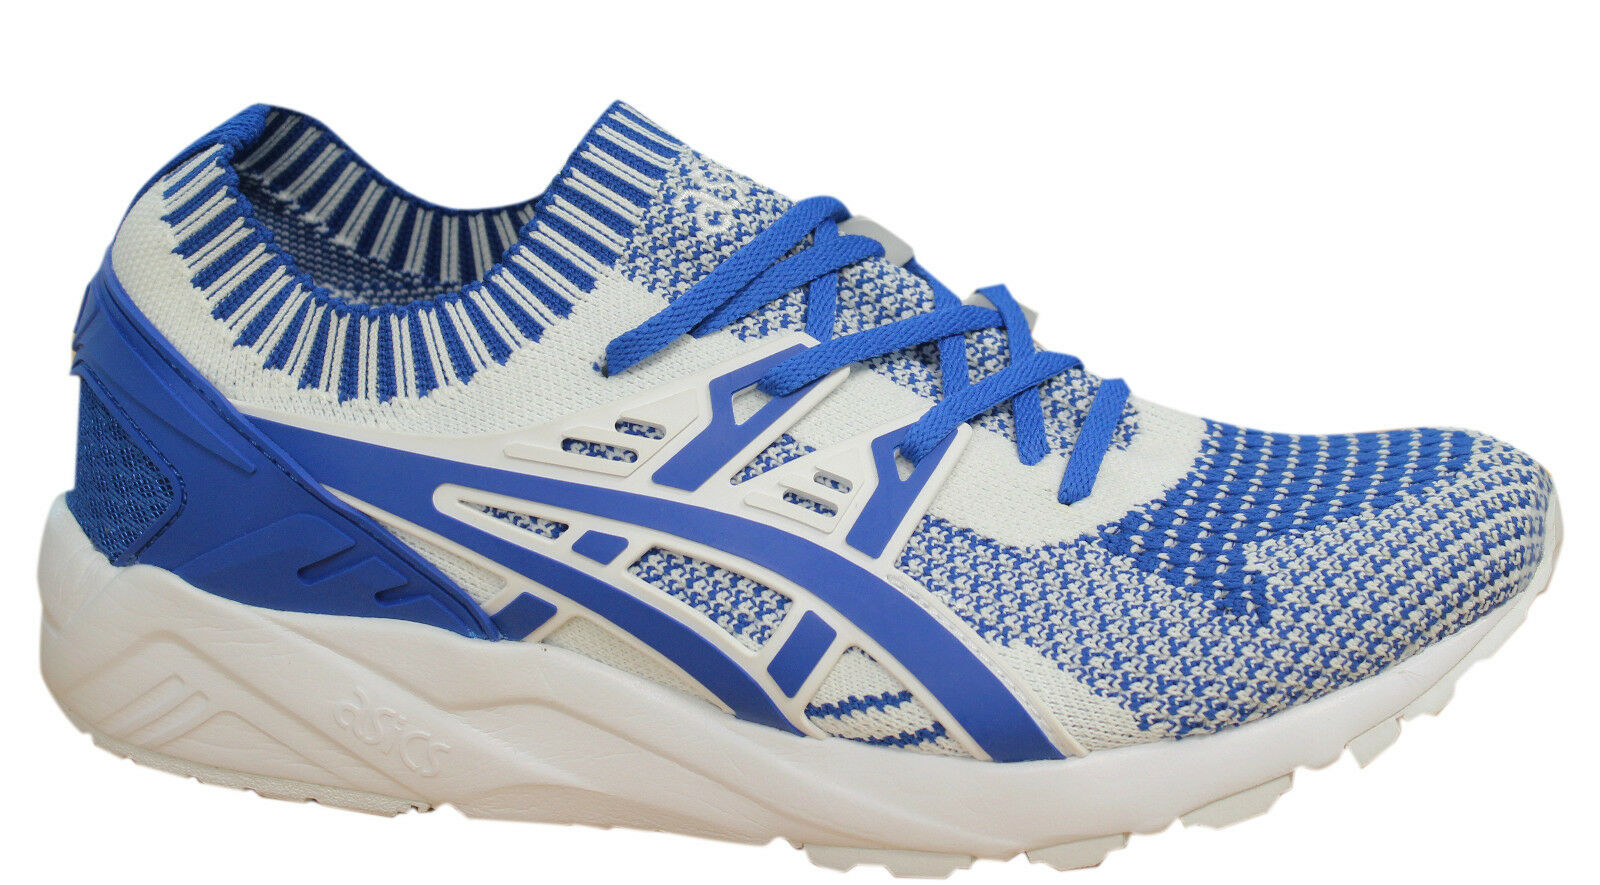 Asics Gel-Kayano Trainers Knit Homme Chaussures Textile Bleu Blanc H7S4N 4545 P2